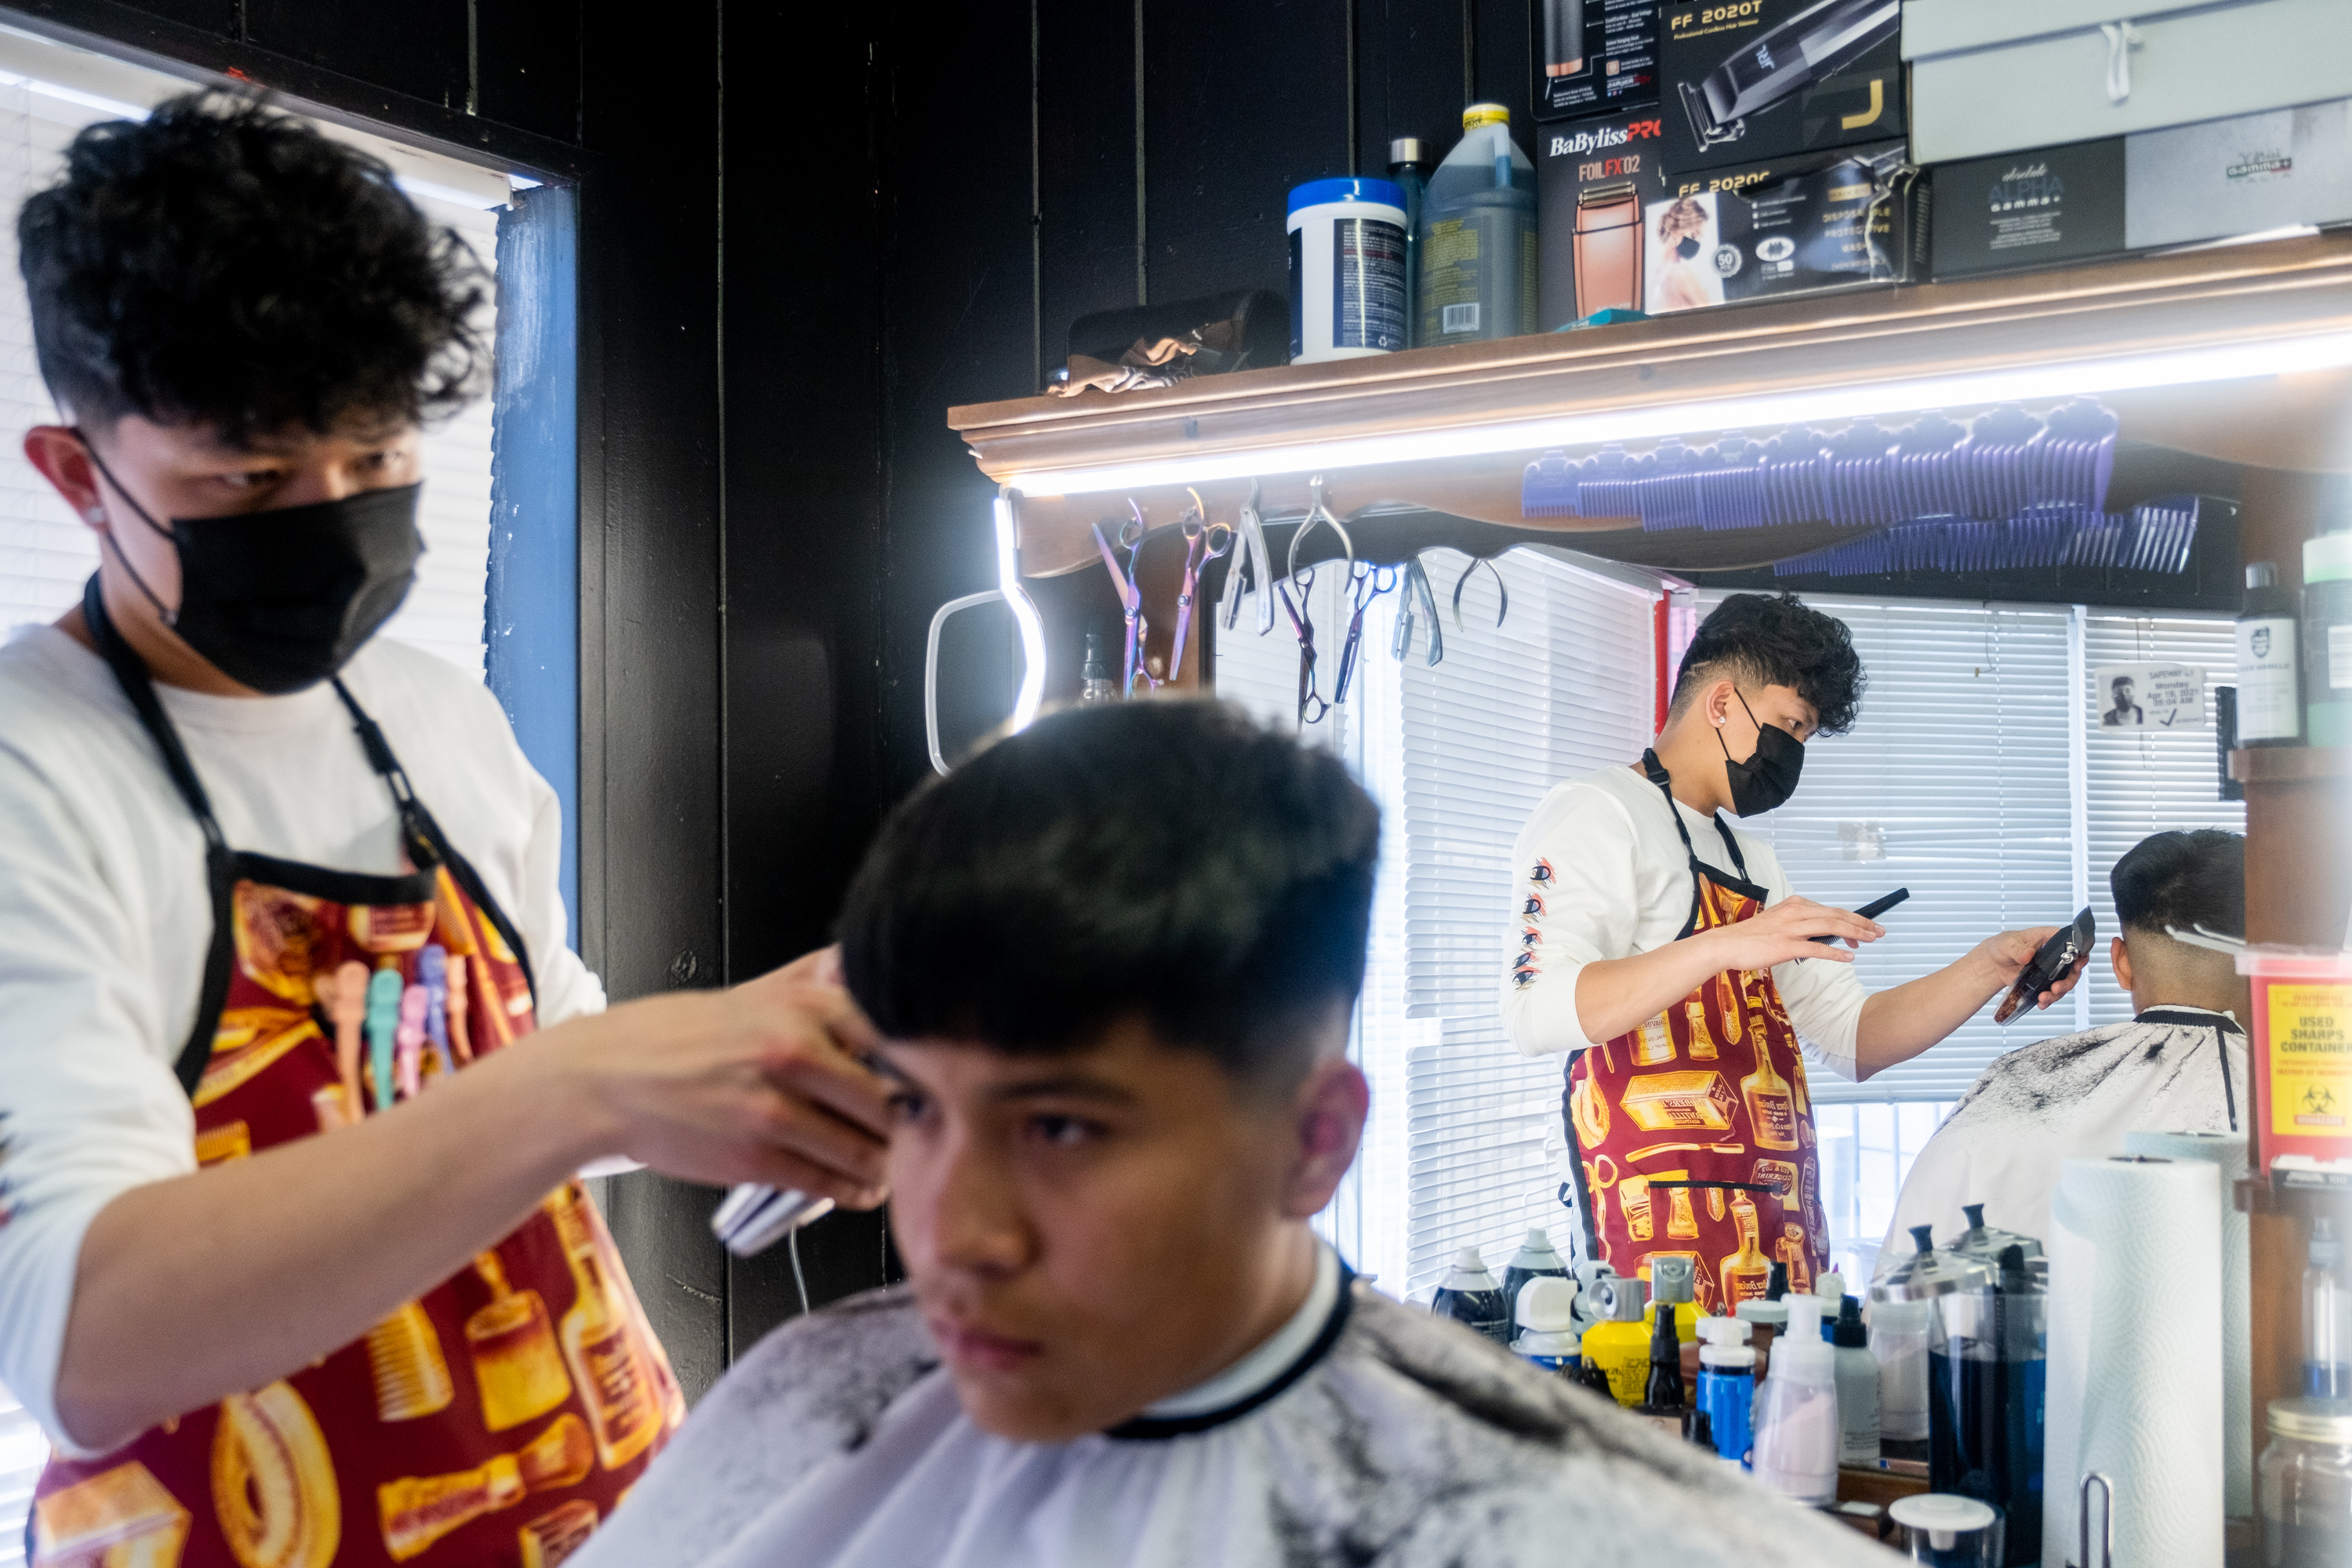 A young man wearing a black mask and barber's apron cuts the hair of another young man in a barber shop. The barber is reflected in his mirror, adorned with bright lights at the top.